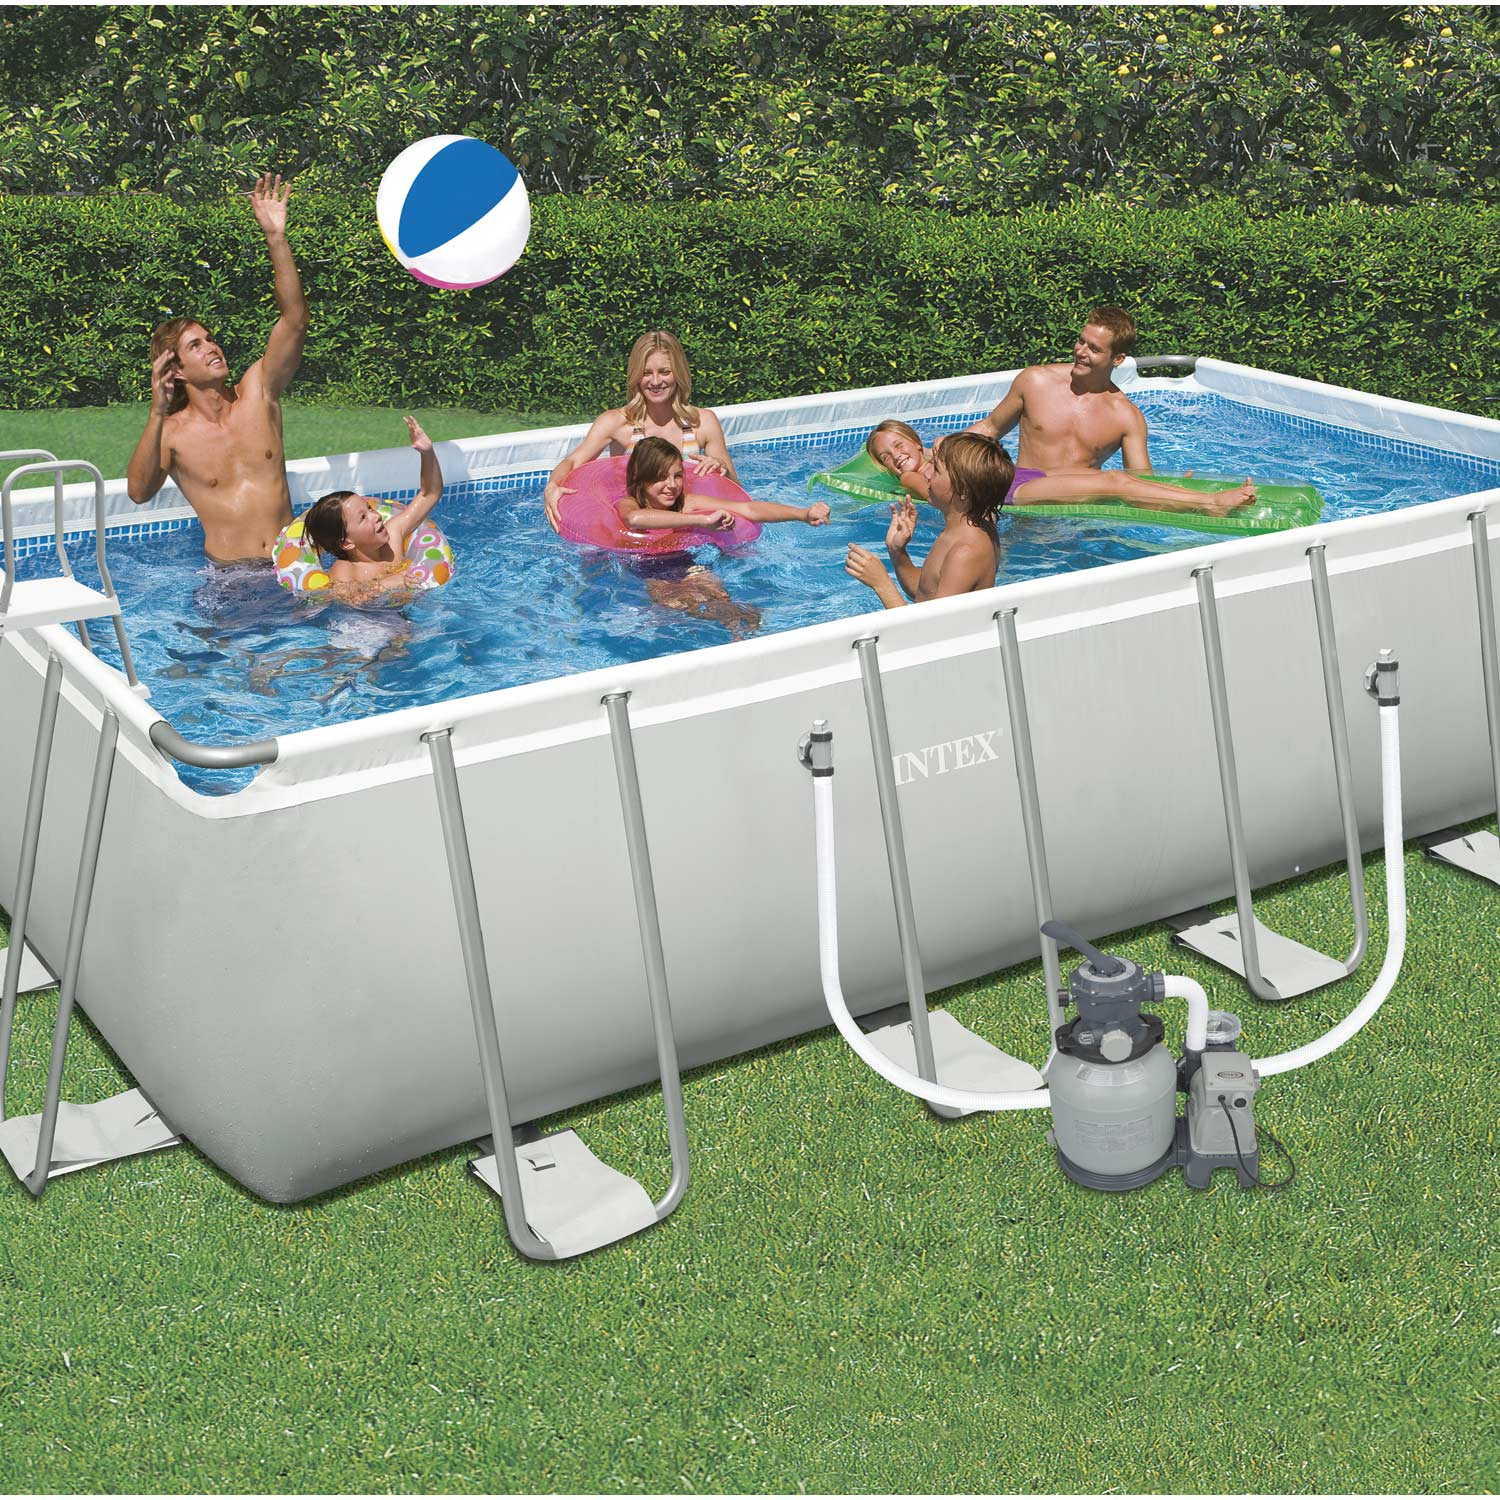 Piscine hors sol autoportante tubulaire ultra silver intex for Piscine aure sole